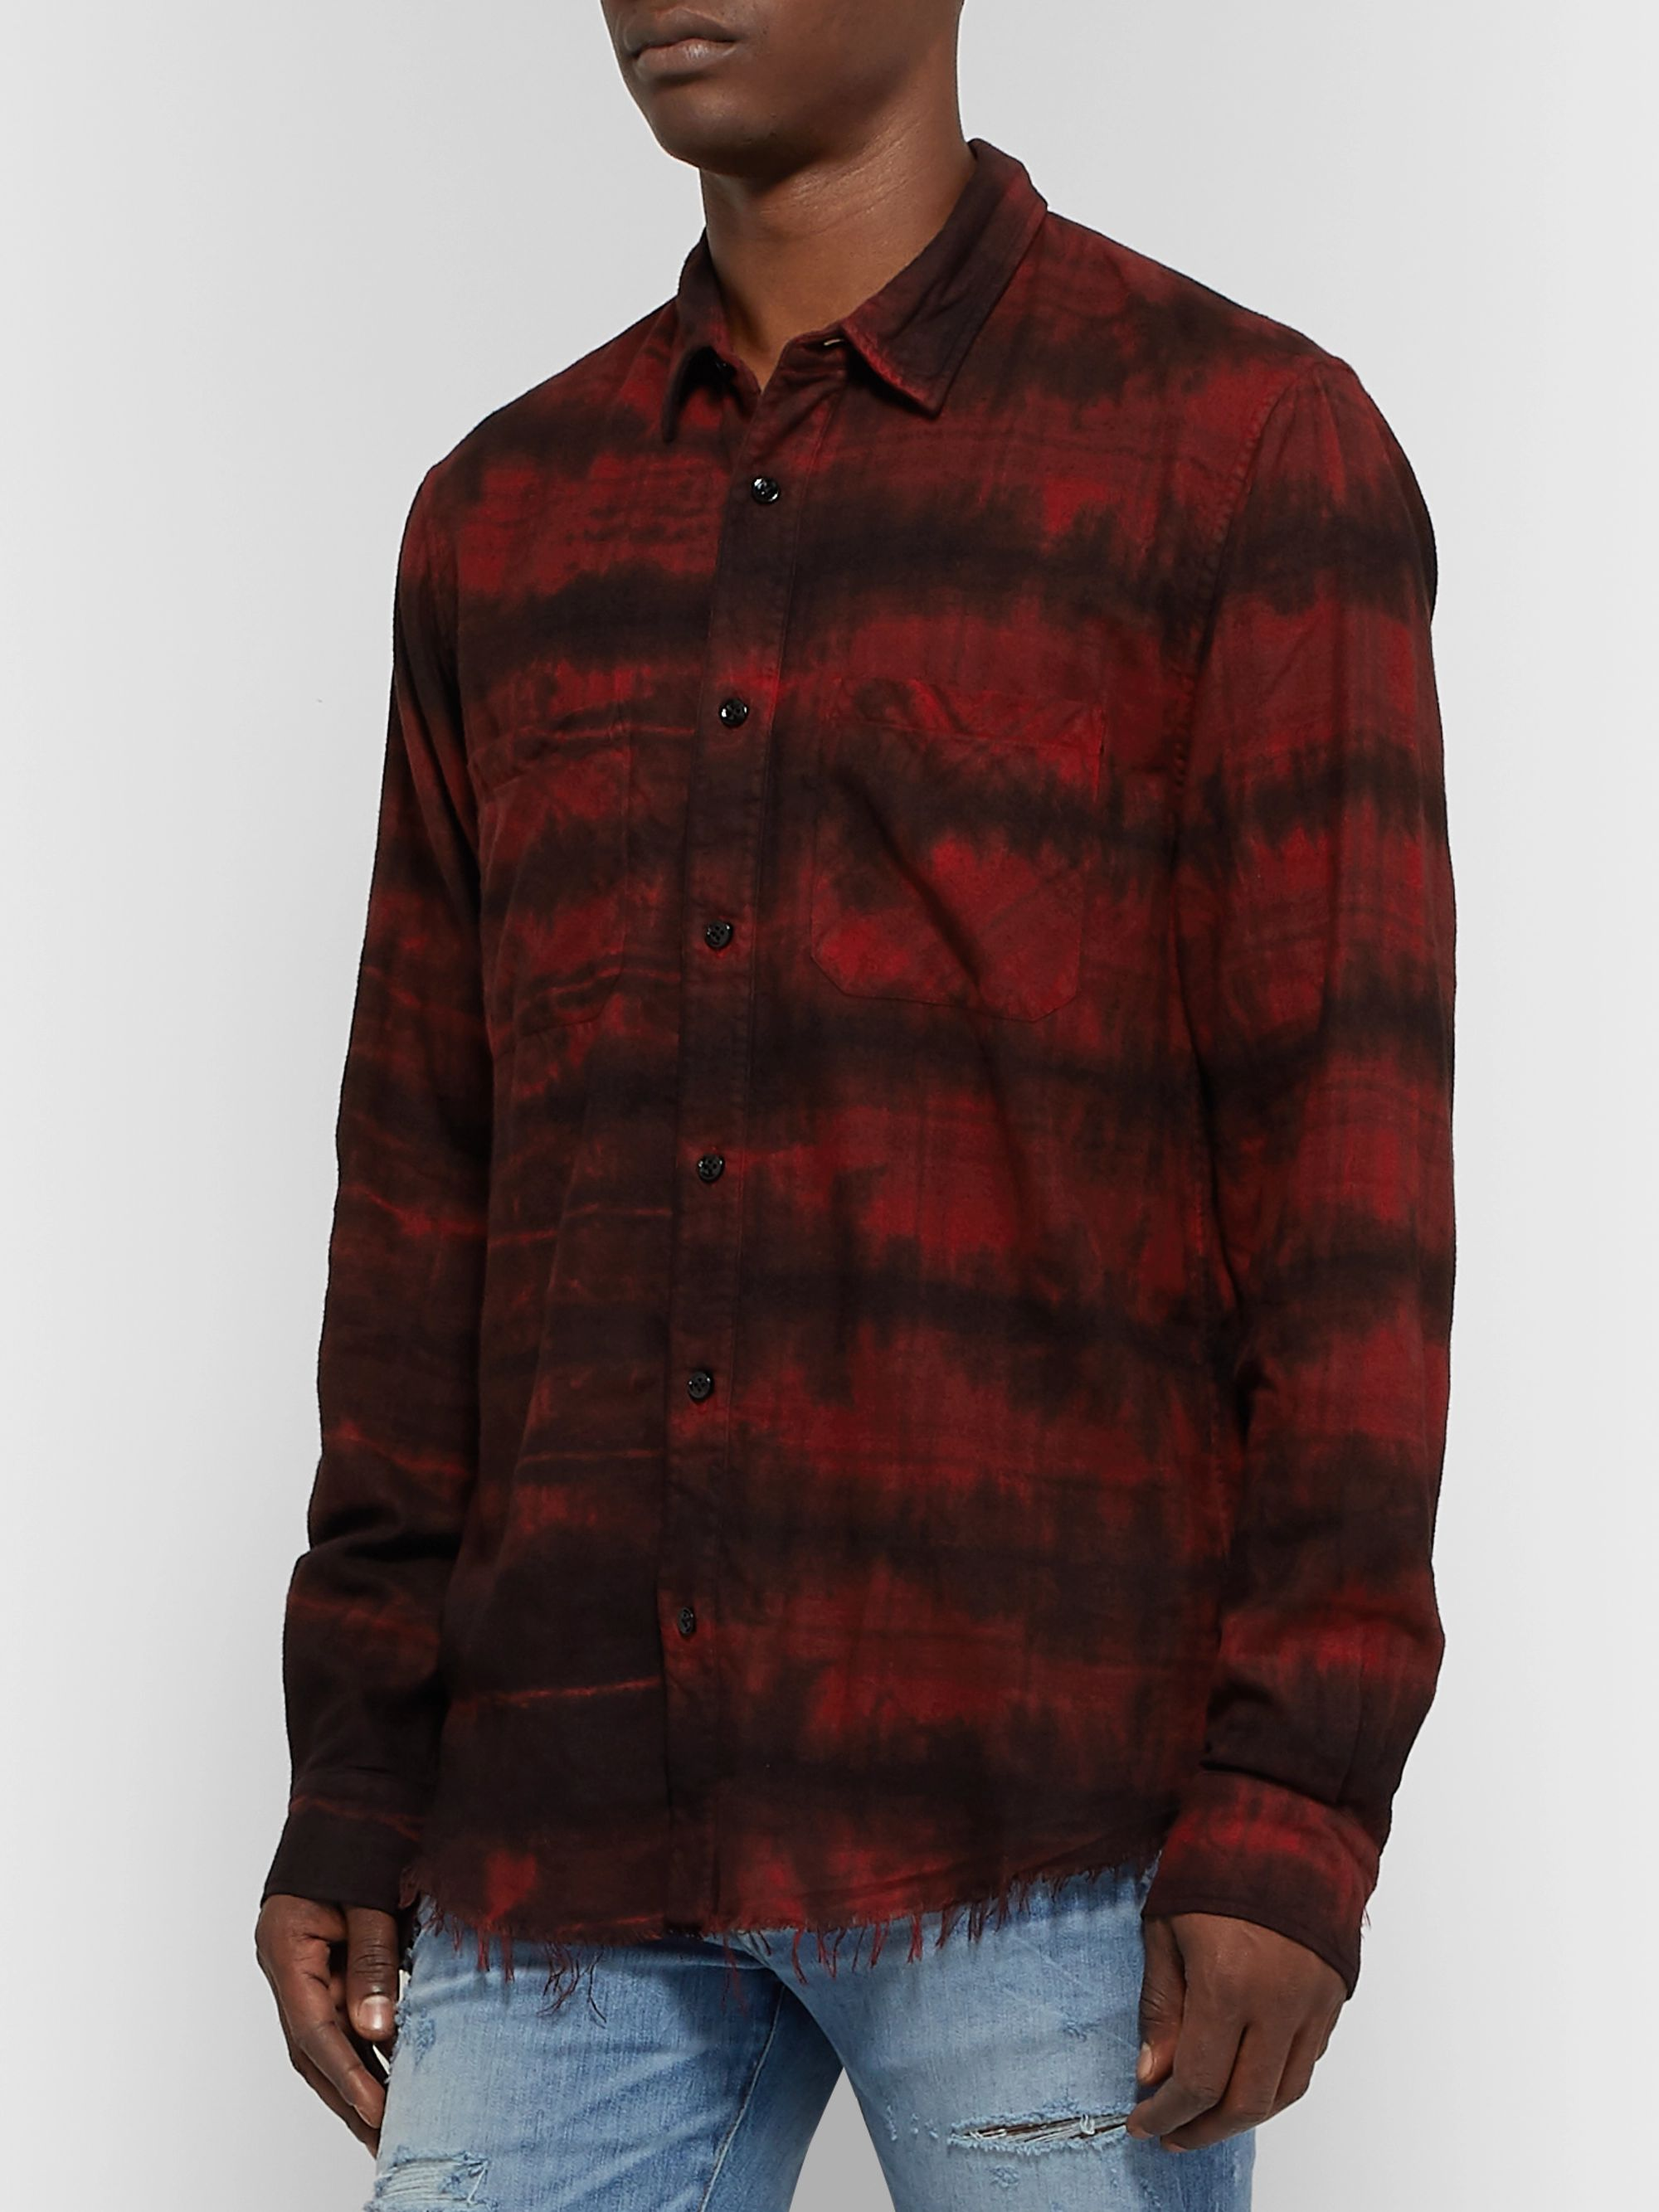 AMIRI Distressed Printed Cotton-Blend Flannel Shirt